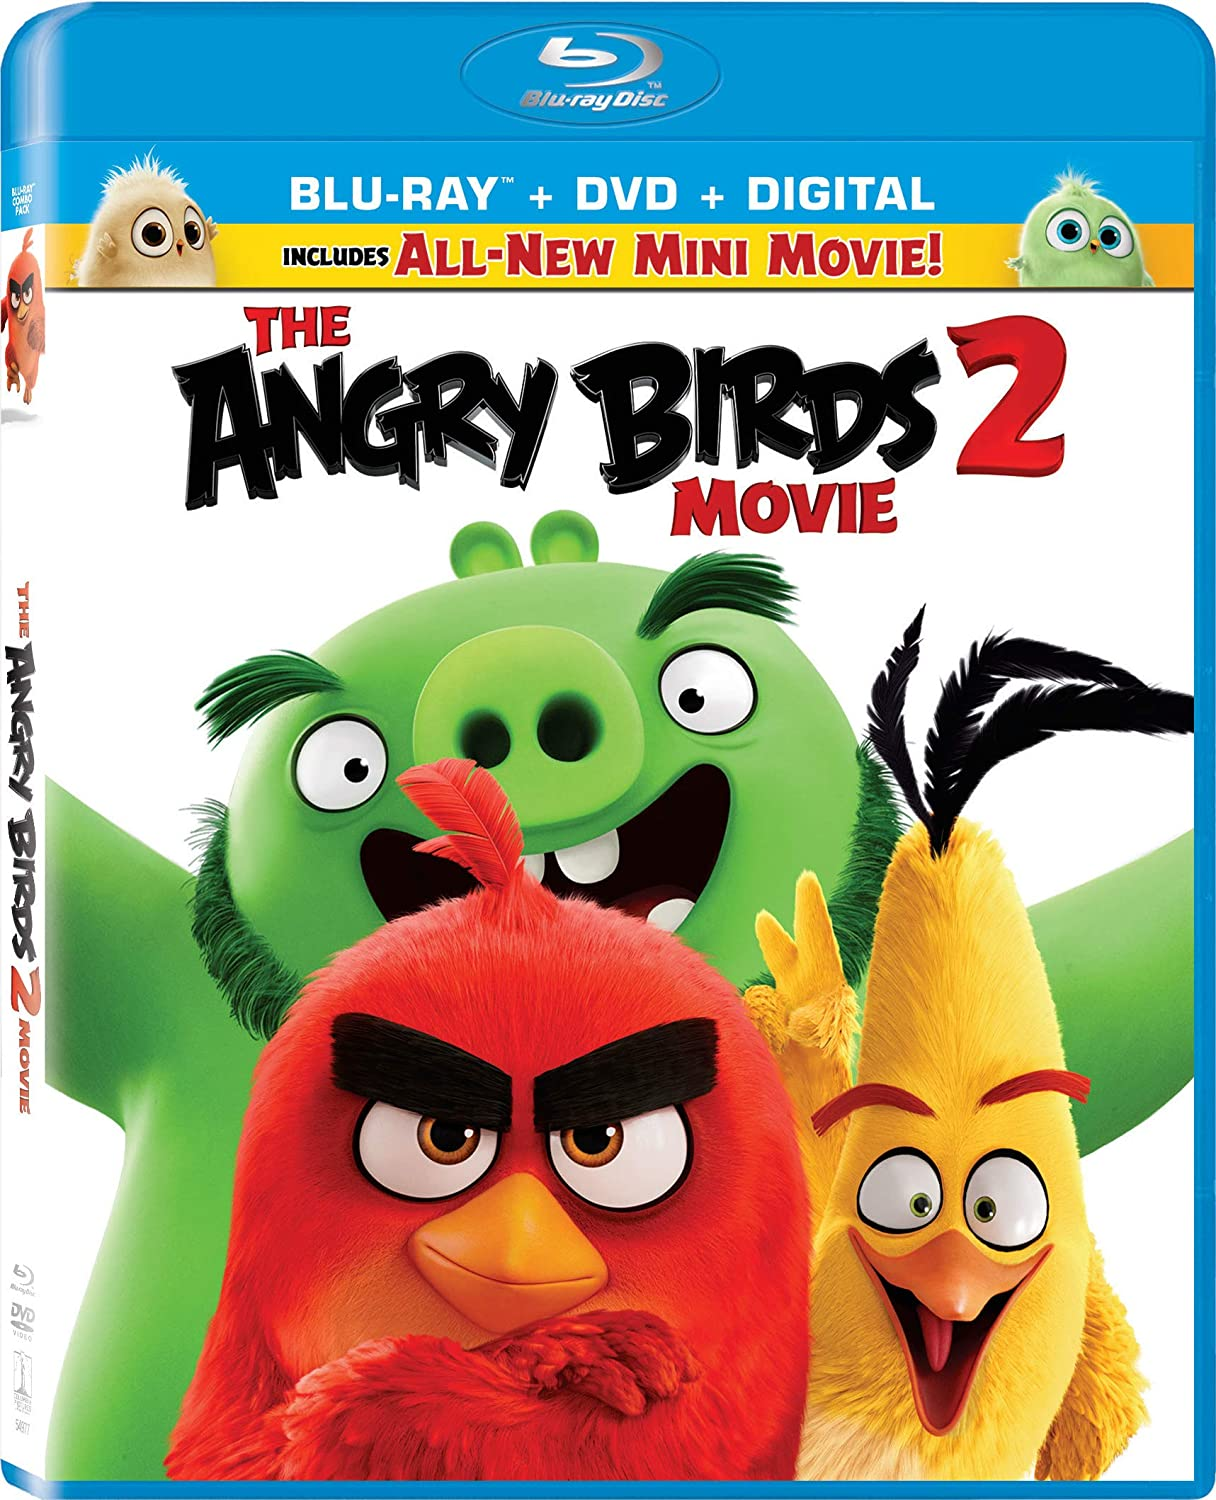 Amazon Com The Angry Birds Movie 2 Blu Ray Thurop Van Orman John Cohen Rovio Entertainment Sony Pictures Animation Movies Tv